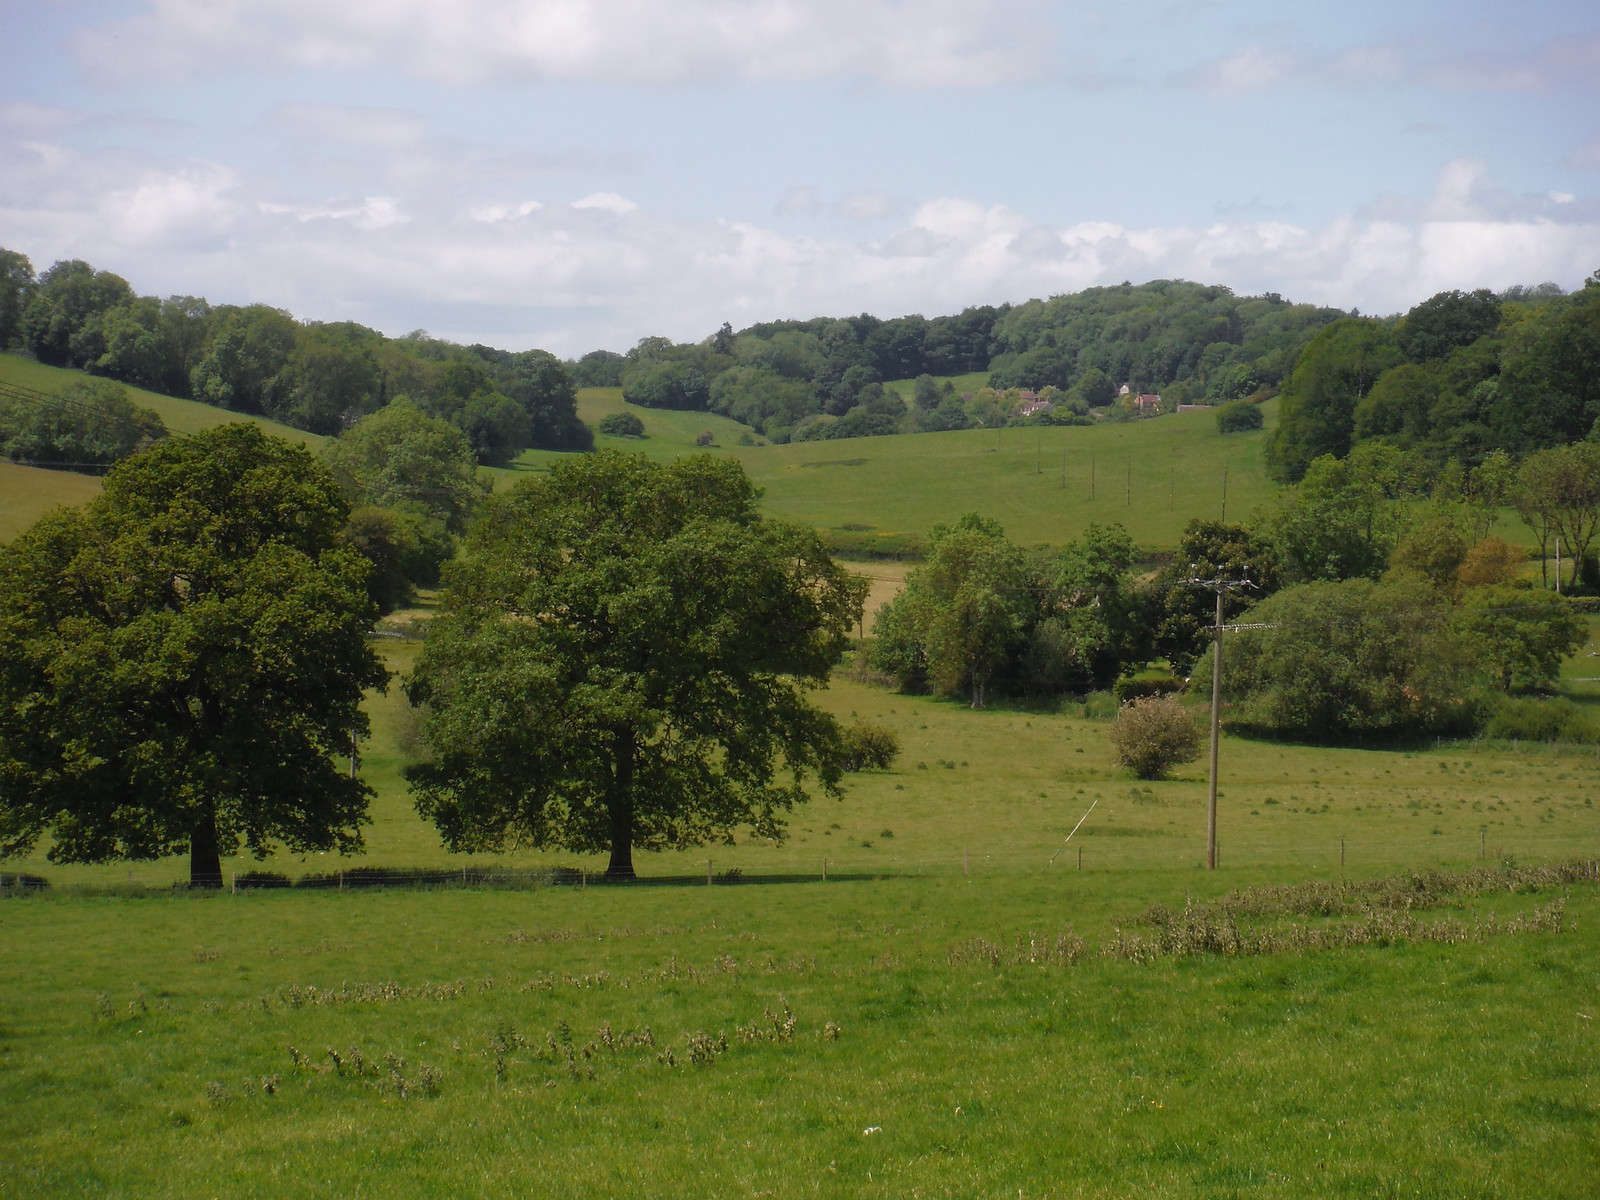 Views back to Ridge hamlet SWC Walk 249 Tisbury Circular via Dinton and Fovant